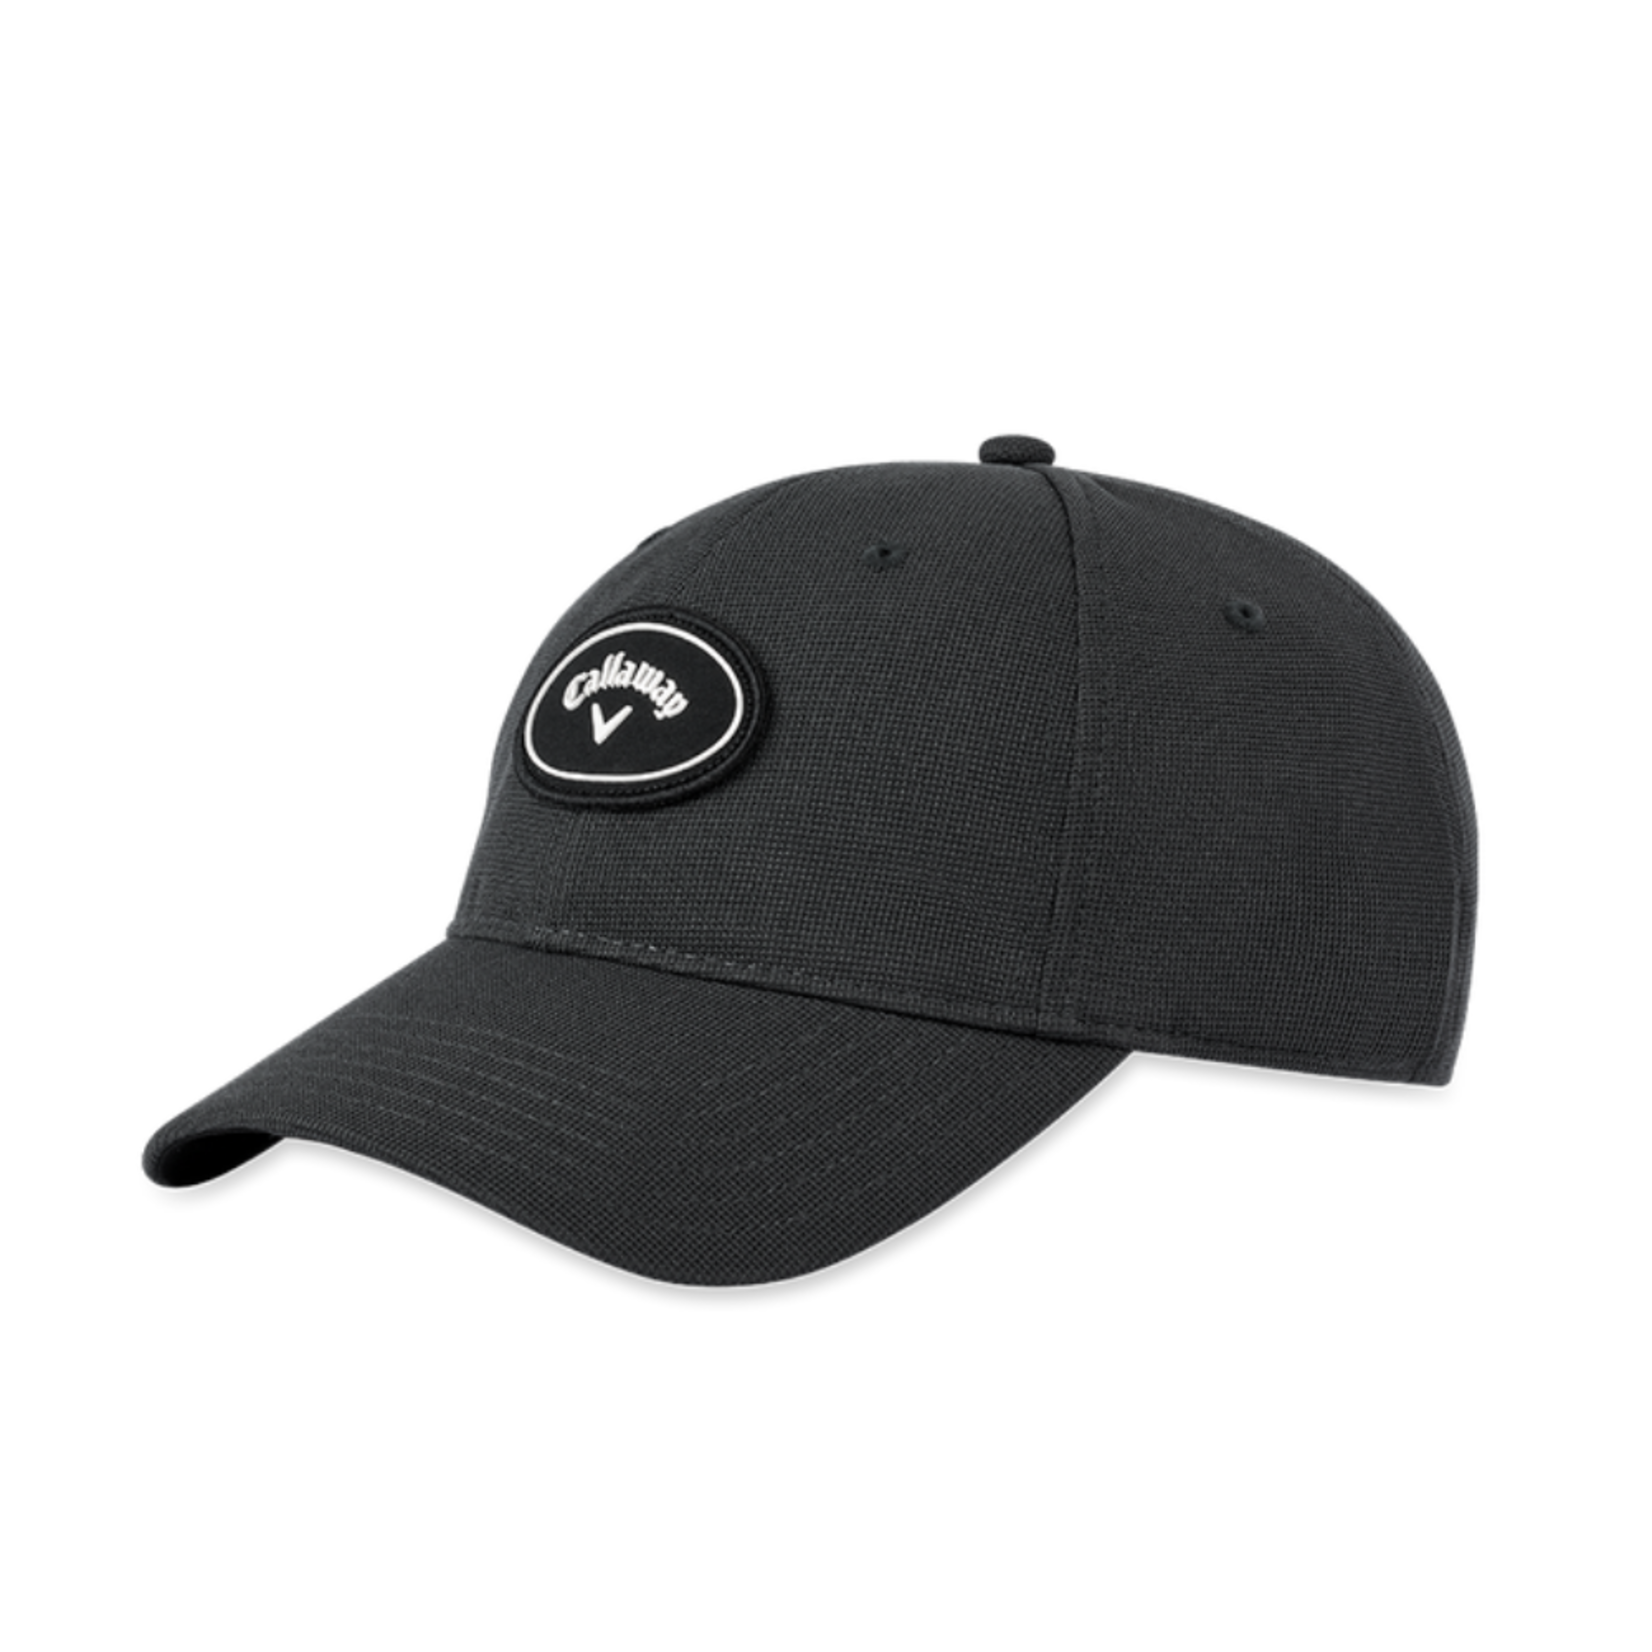 Callaway Callaway Stretch Fitted Hat